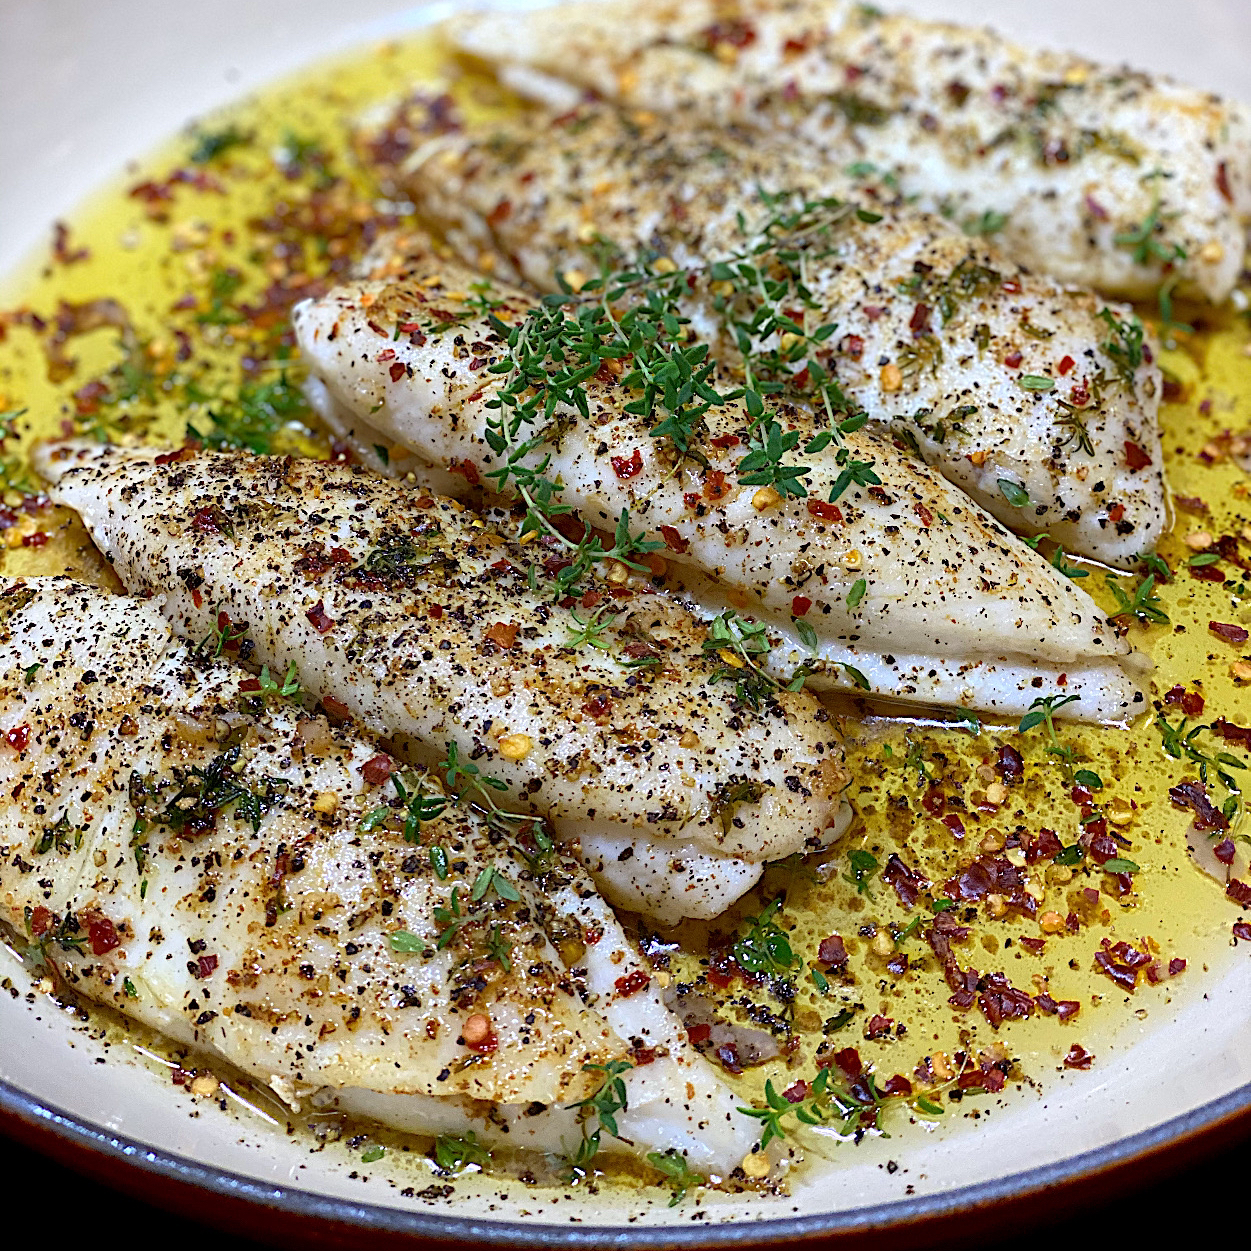 Pan fried fish, herb infused lemon butter sauce